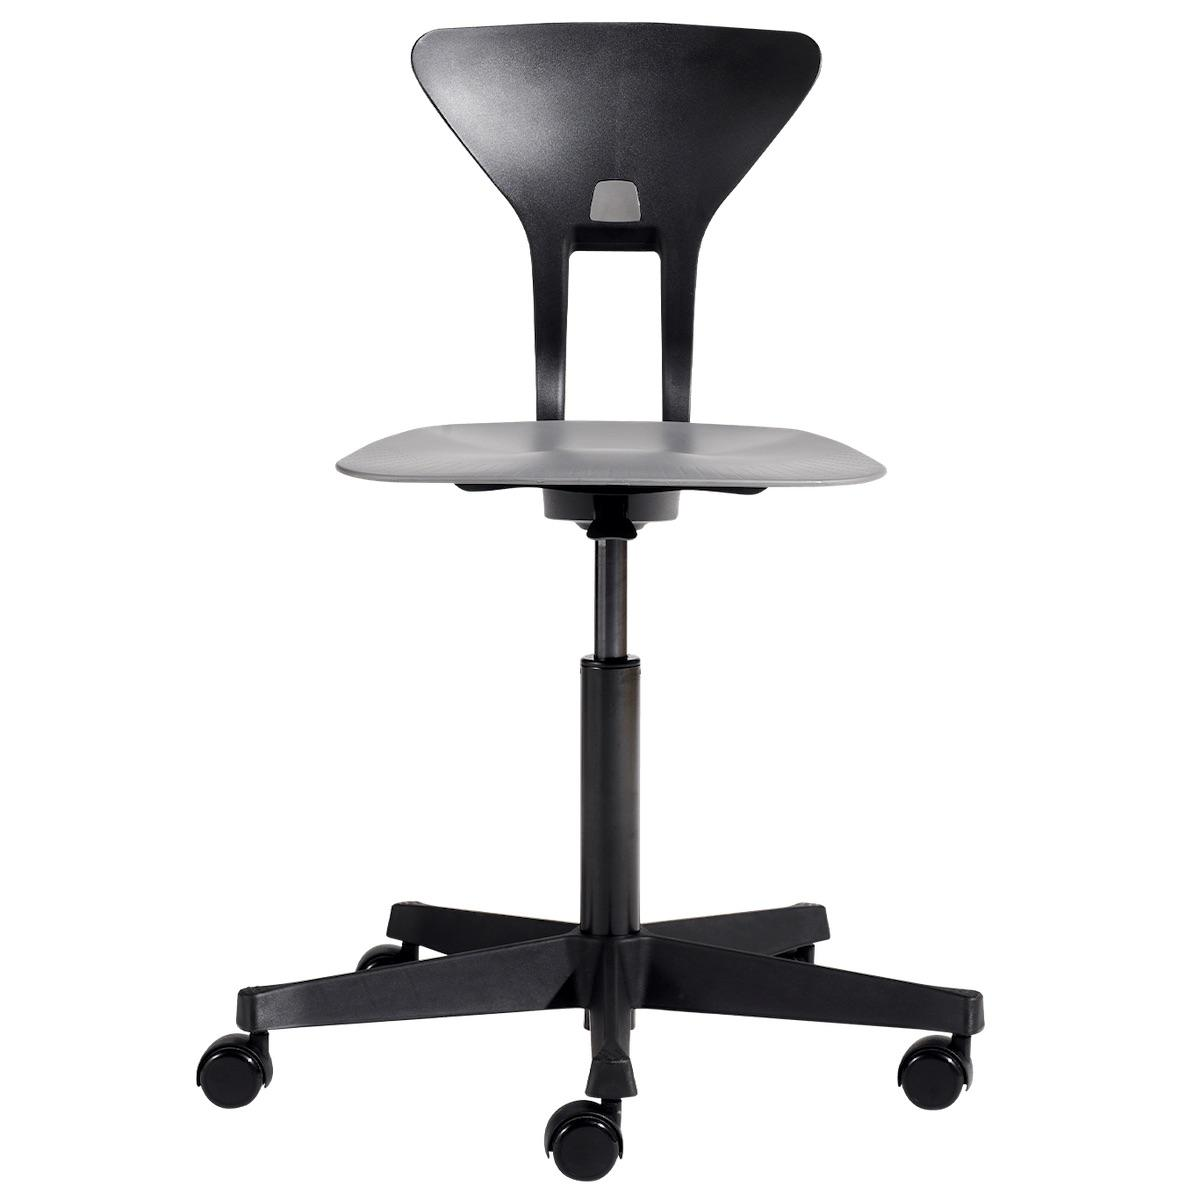 RAY by Flexa Chaise de bureau ergonomique noir